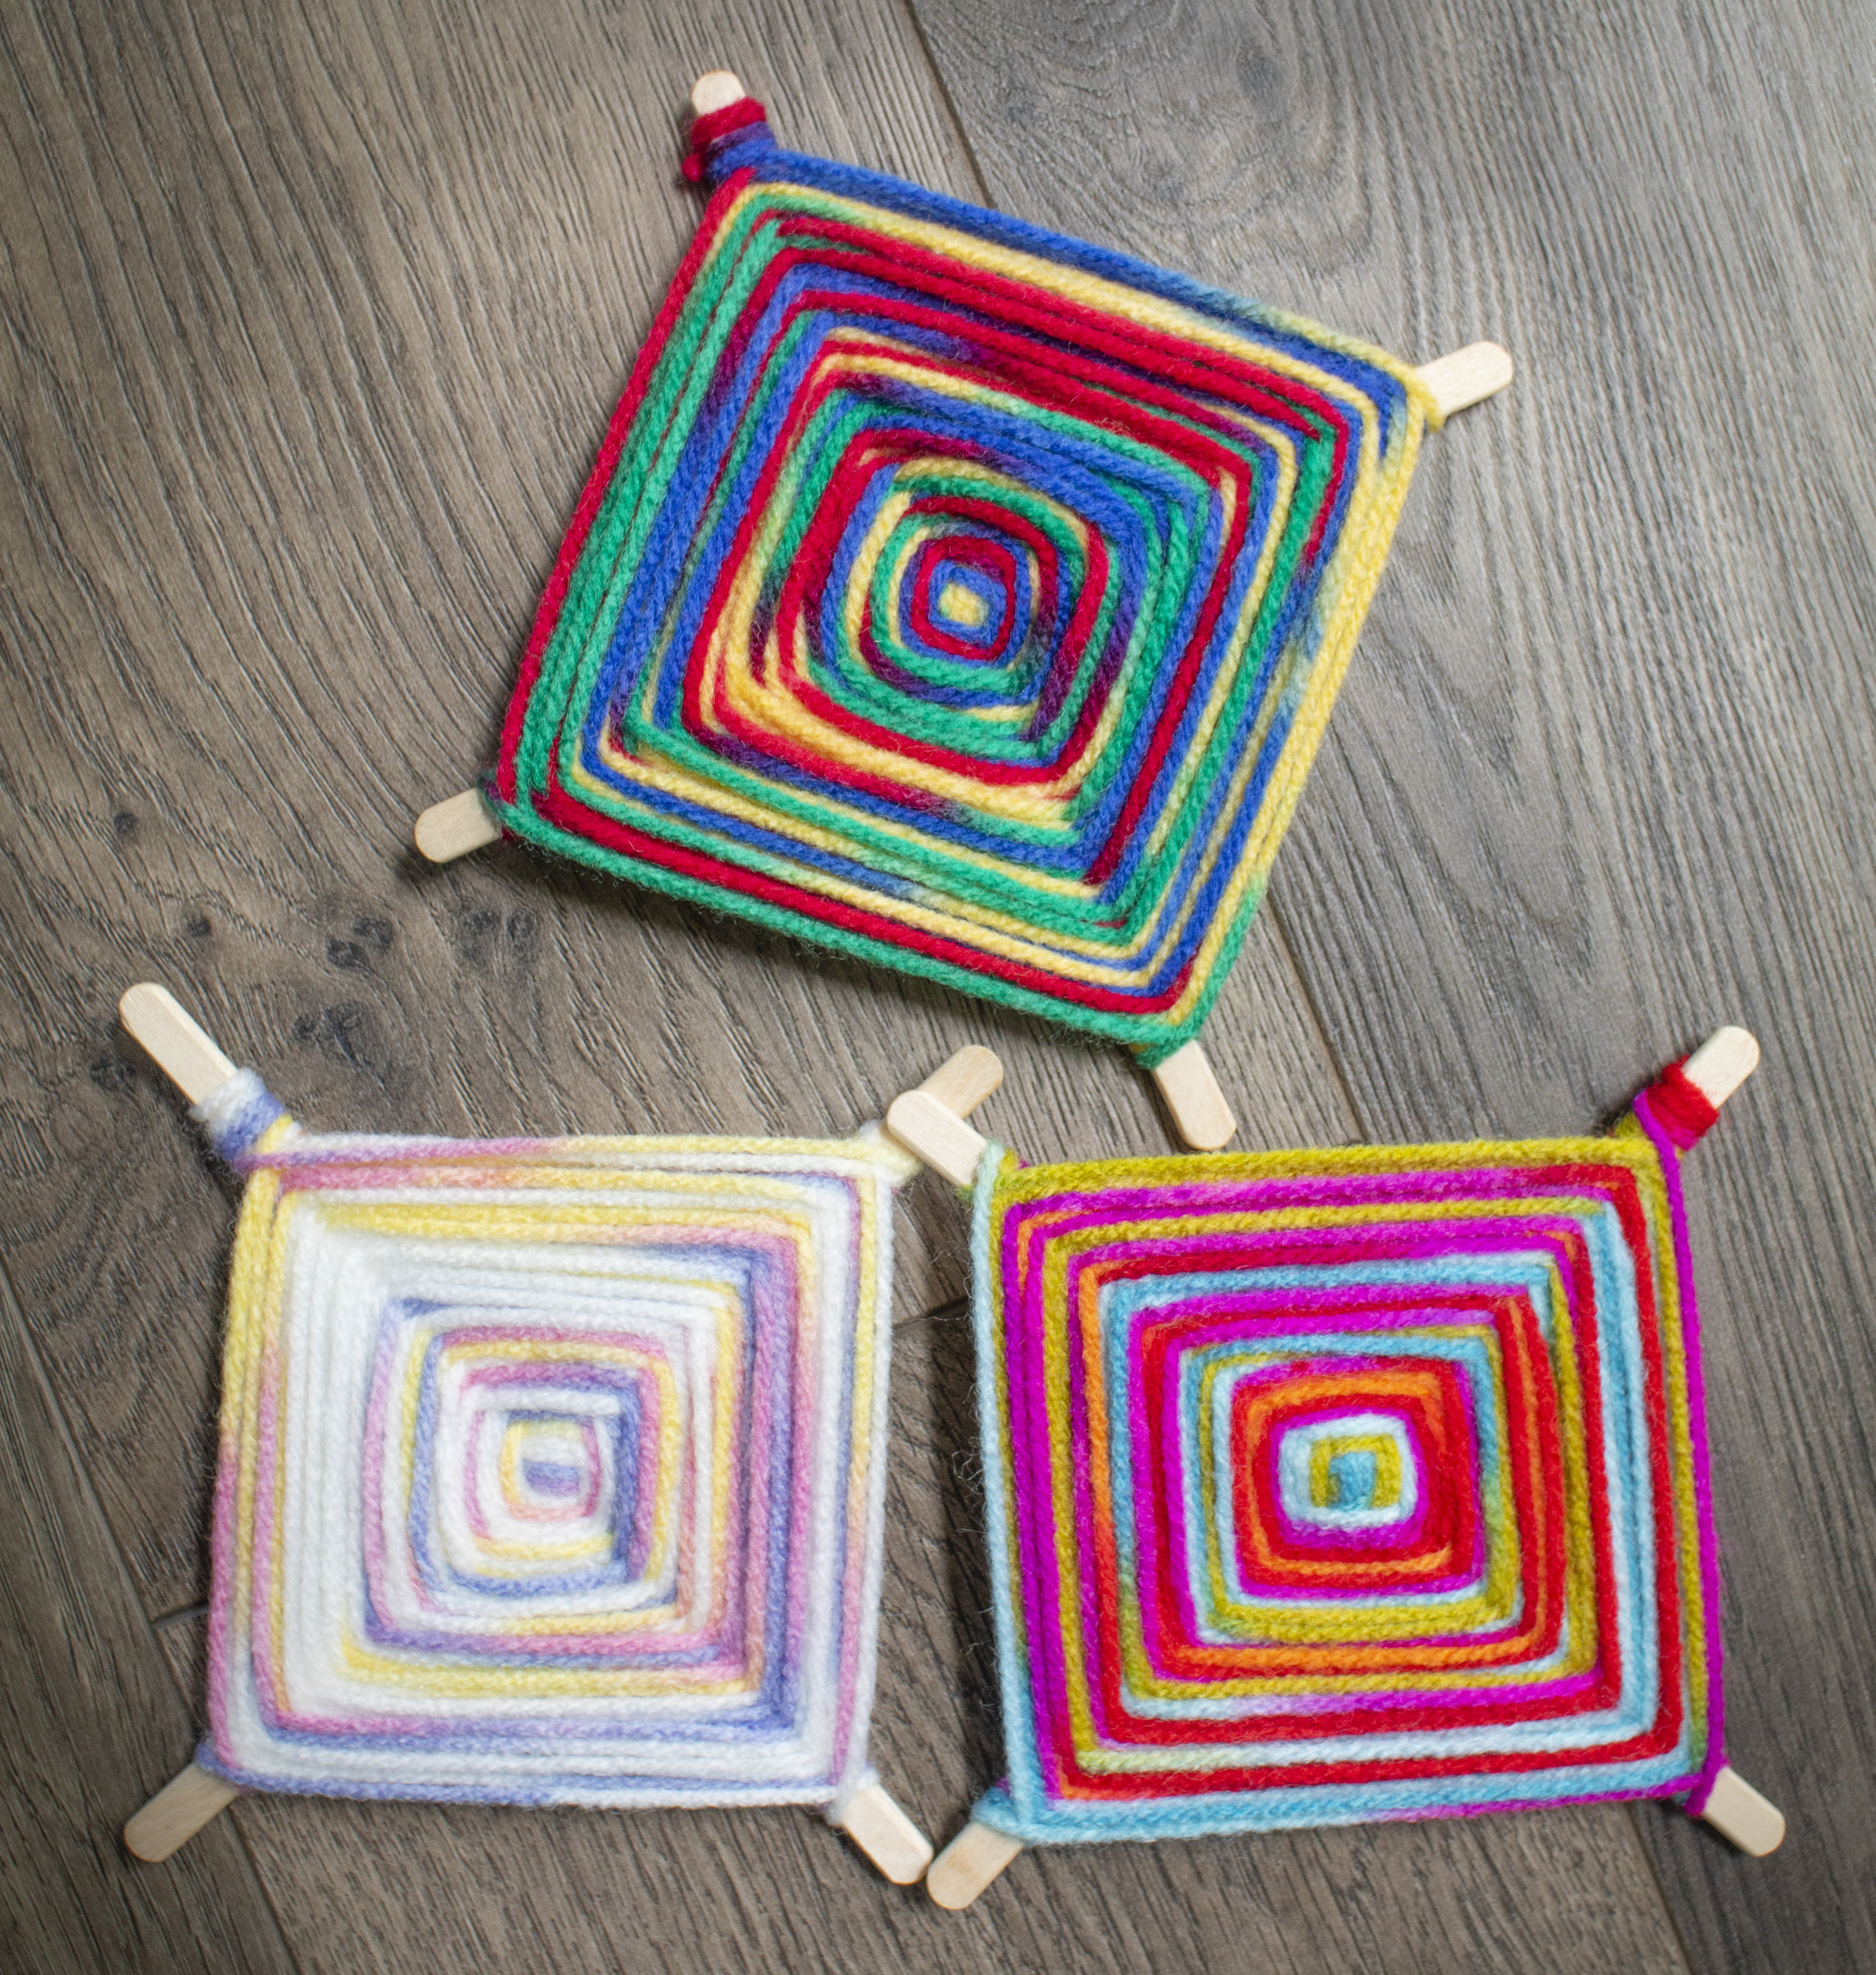 We are making these wonderful, colorful weaving projects, called god's eyes